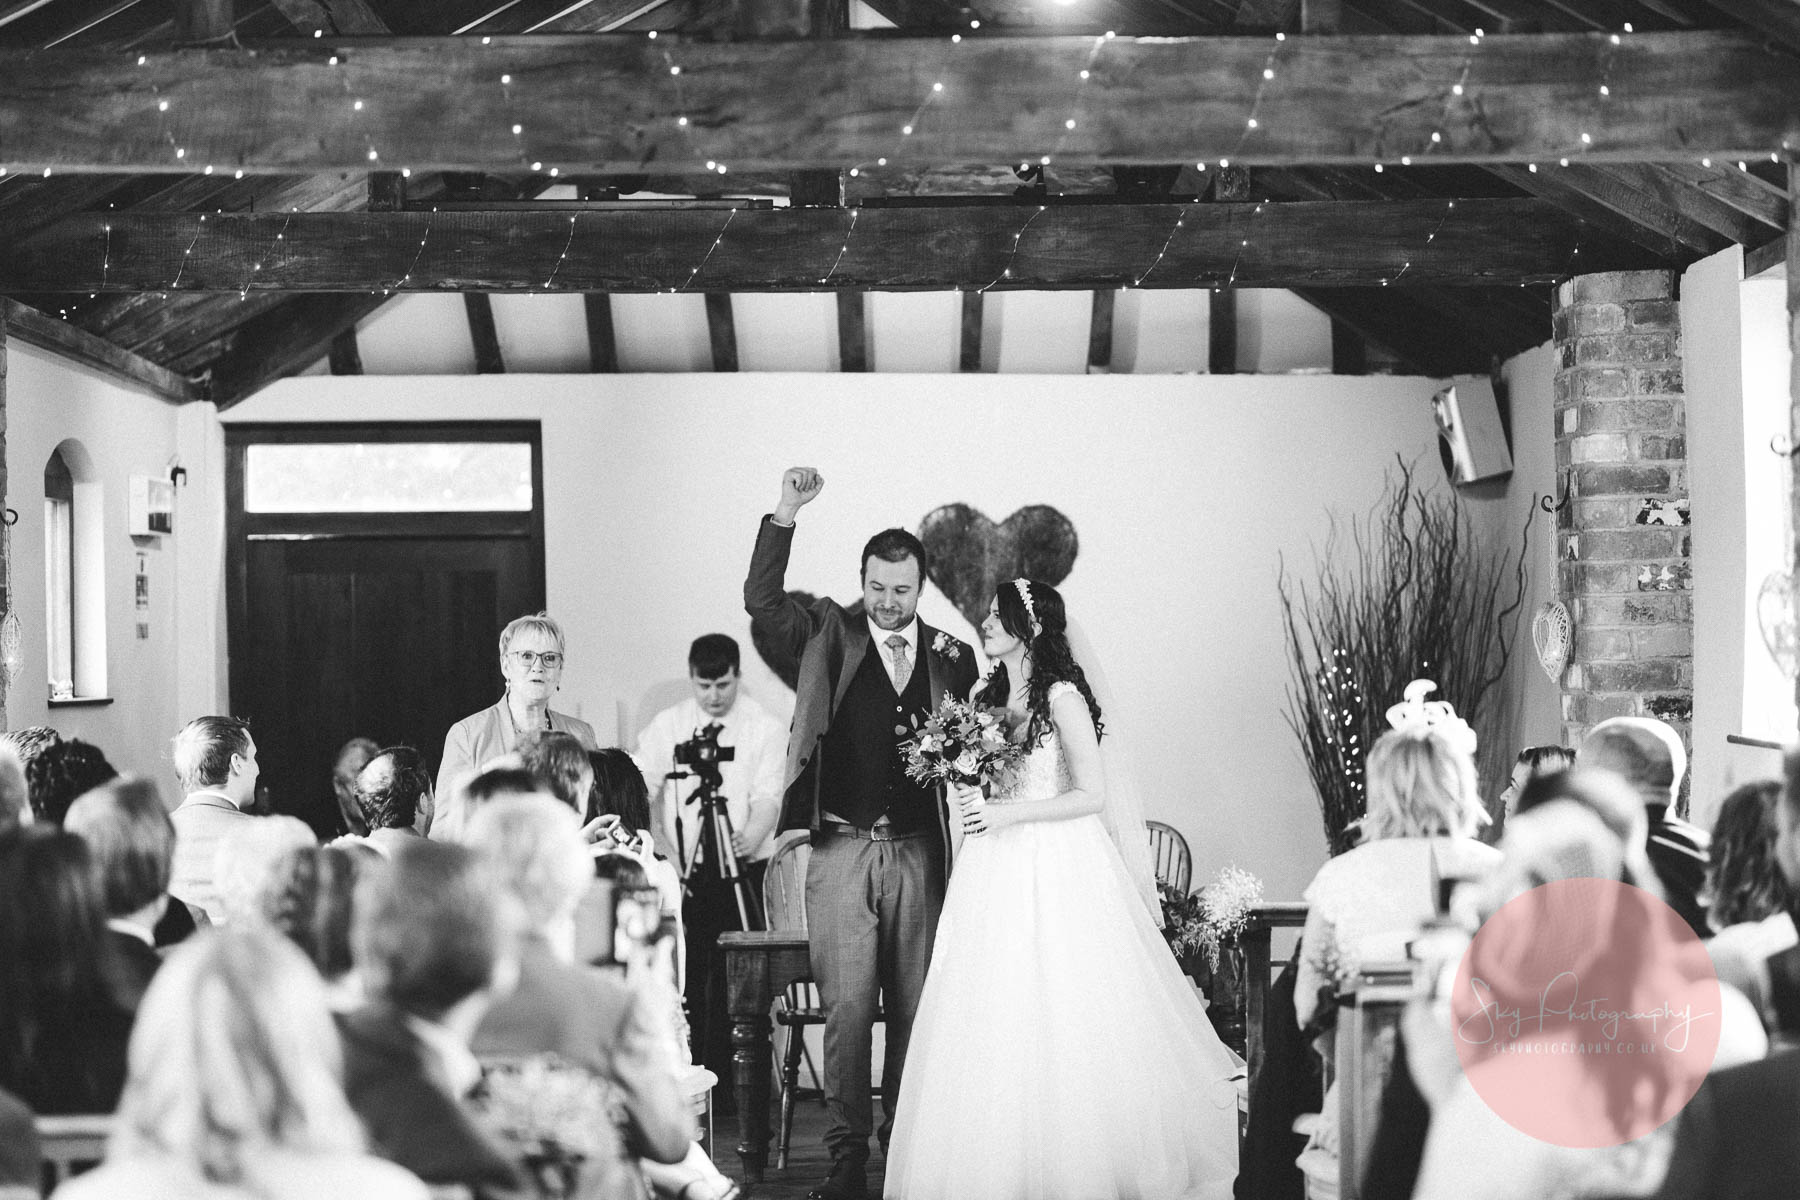 groom has his hand aloft as he celebrates getting married